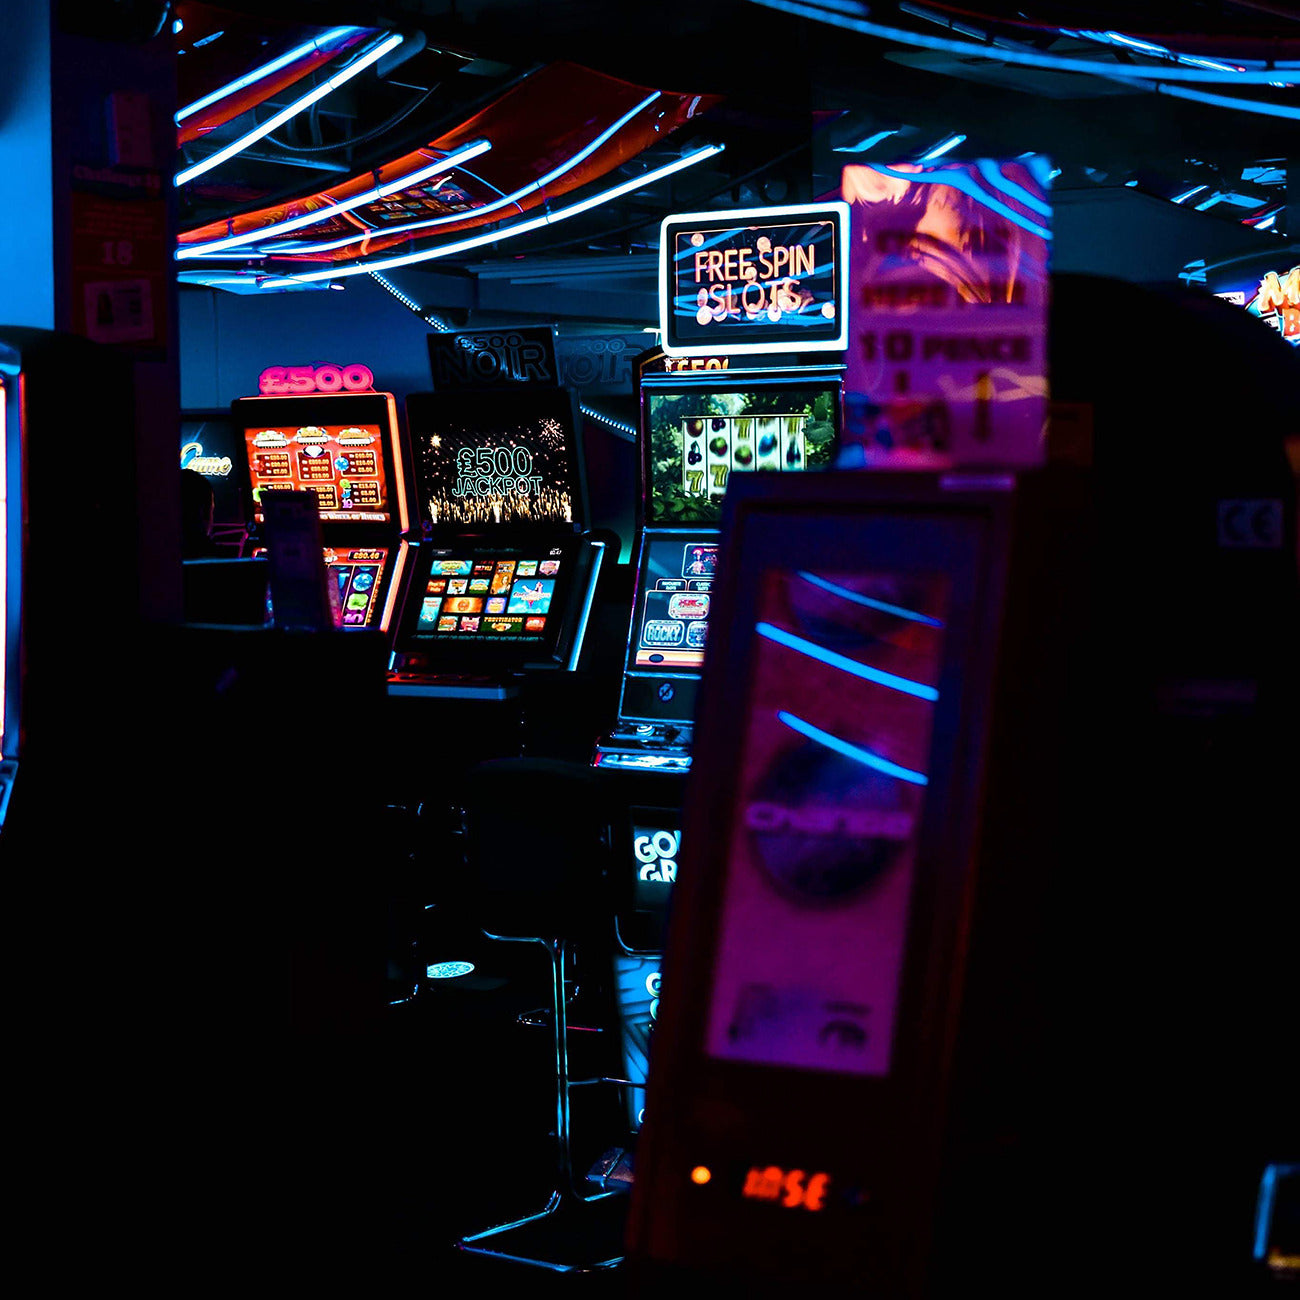 Casino machines lit up in a dark room